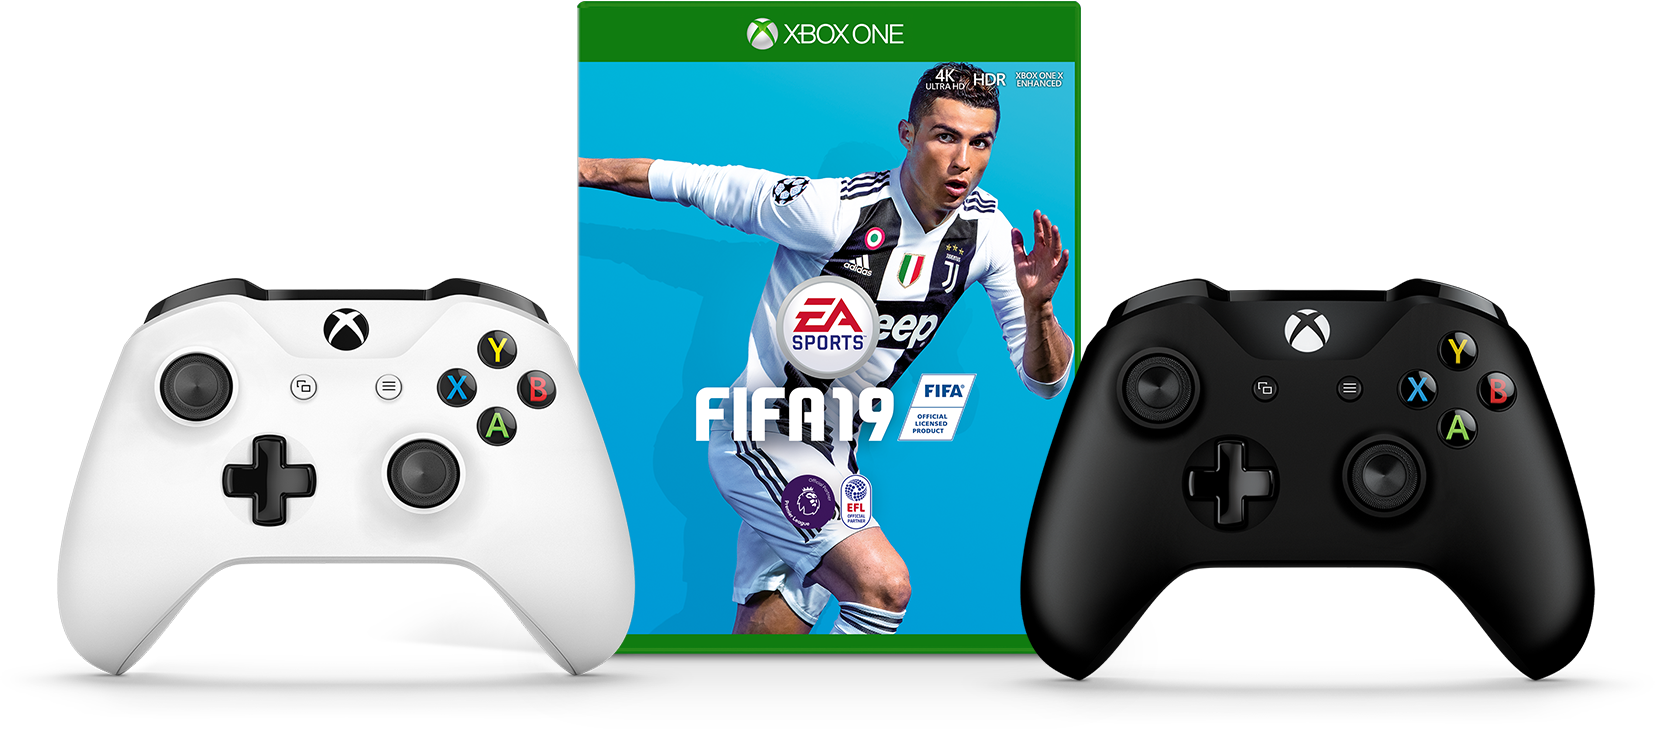 FIFA 19, Xbox Wireless Controller - Black, Xbox Wireless Controller - White